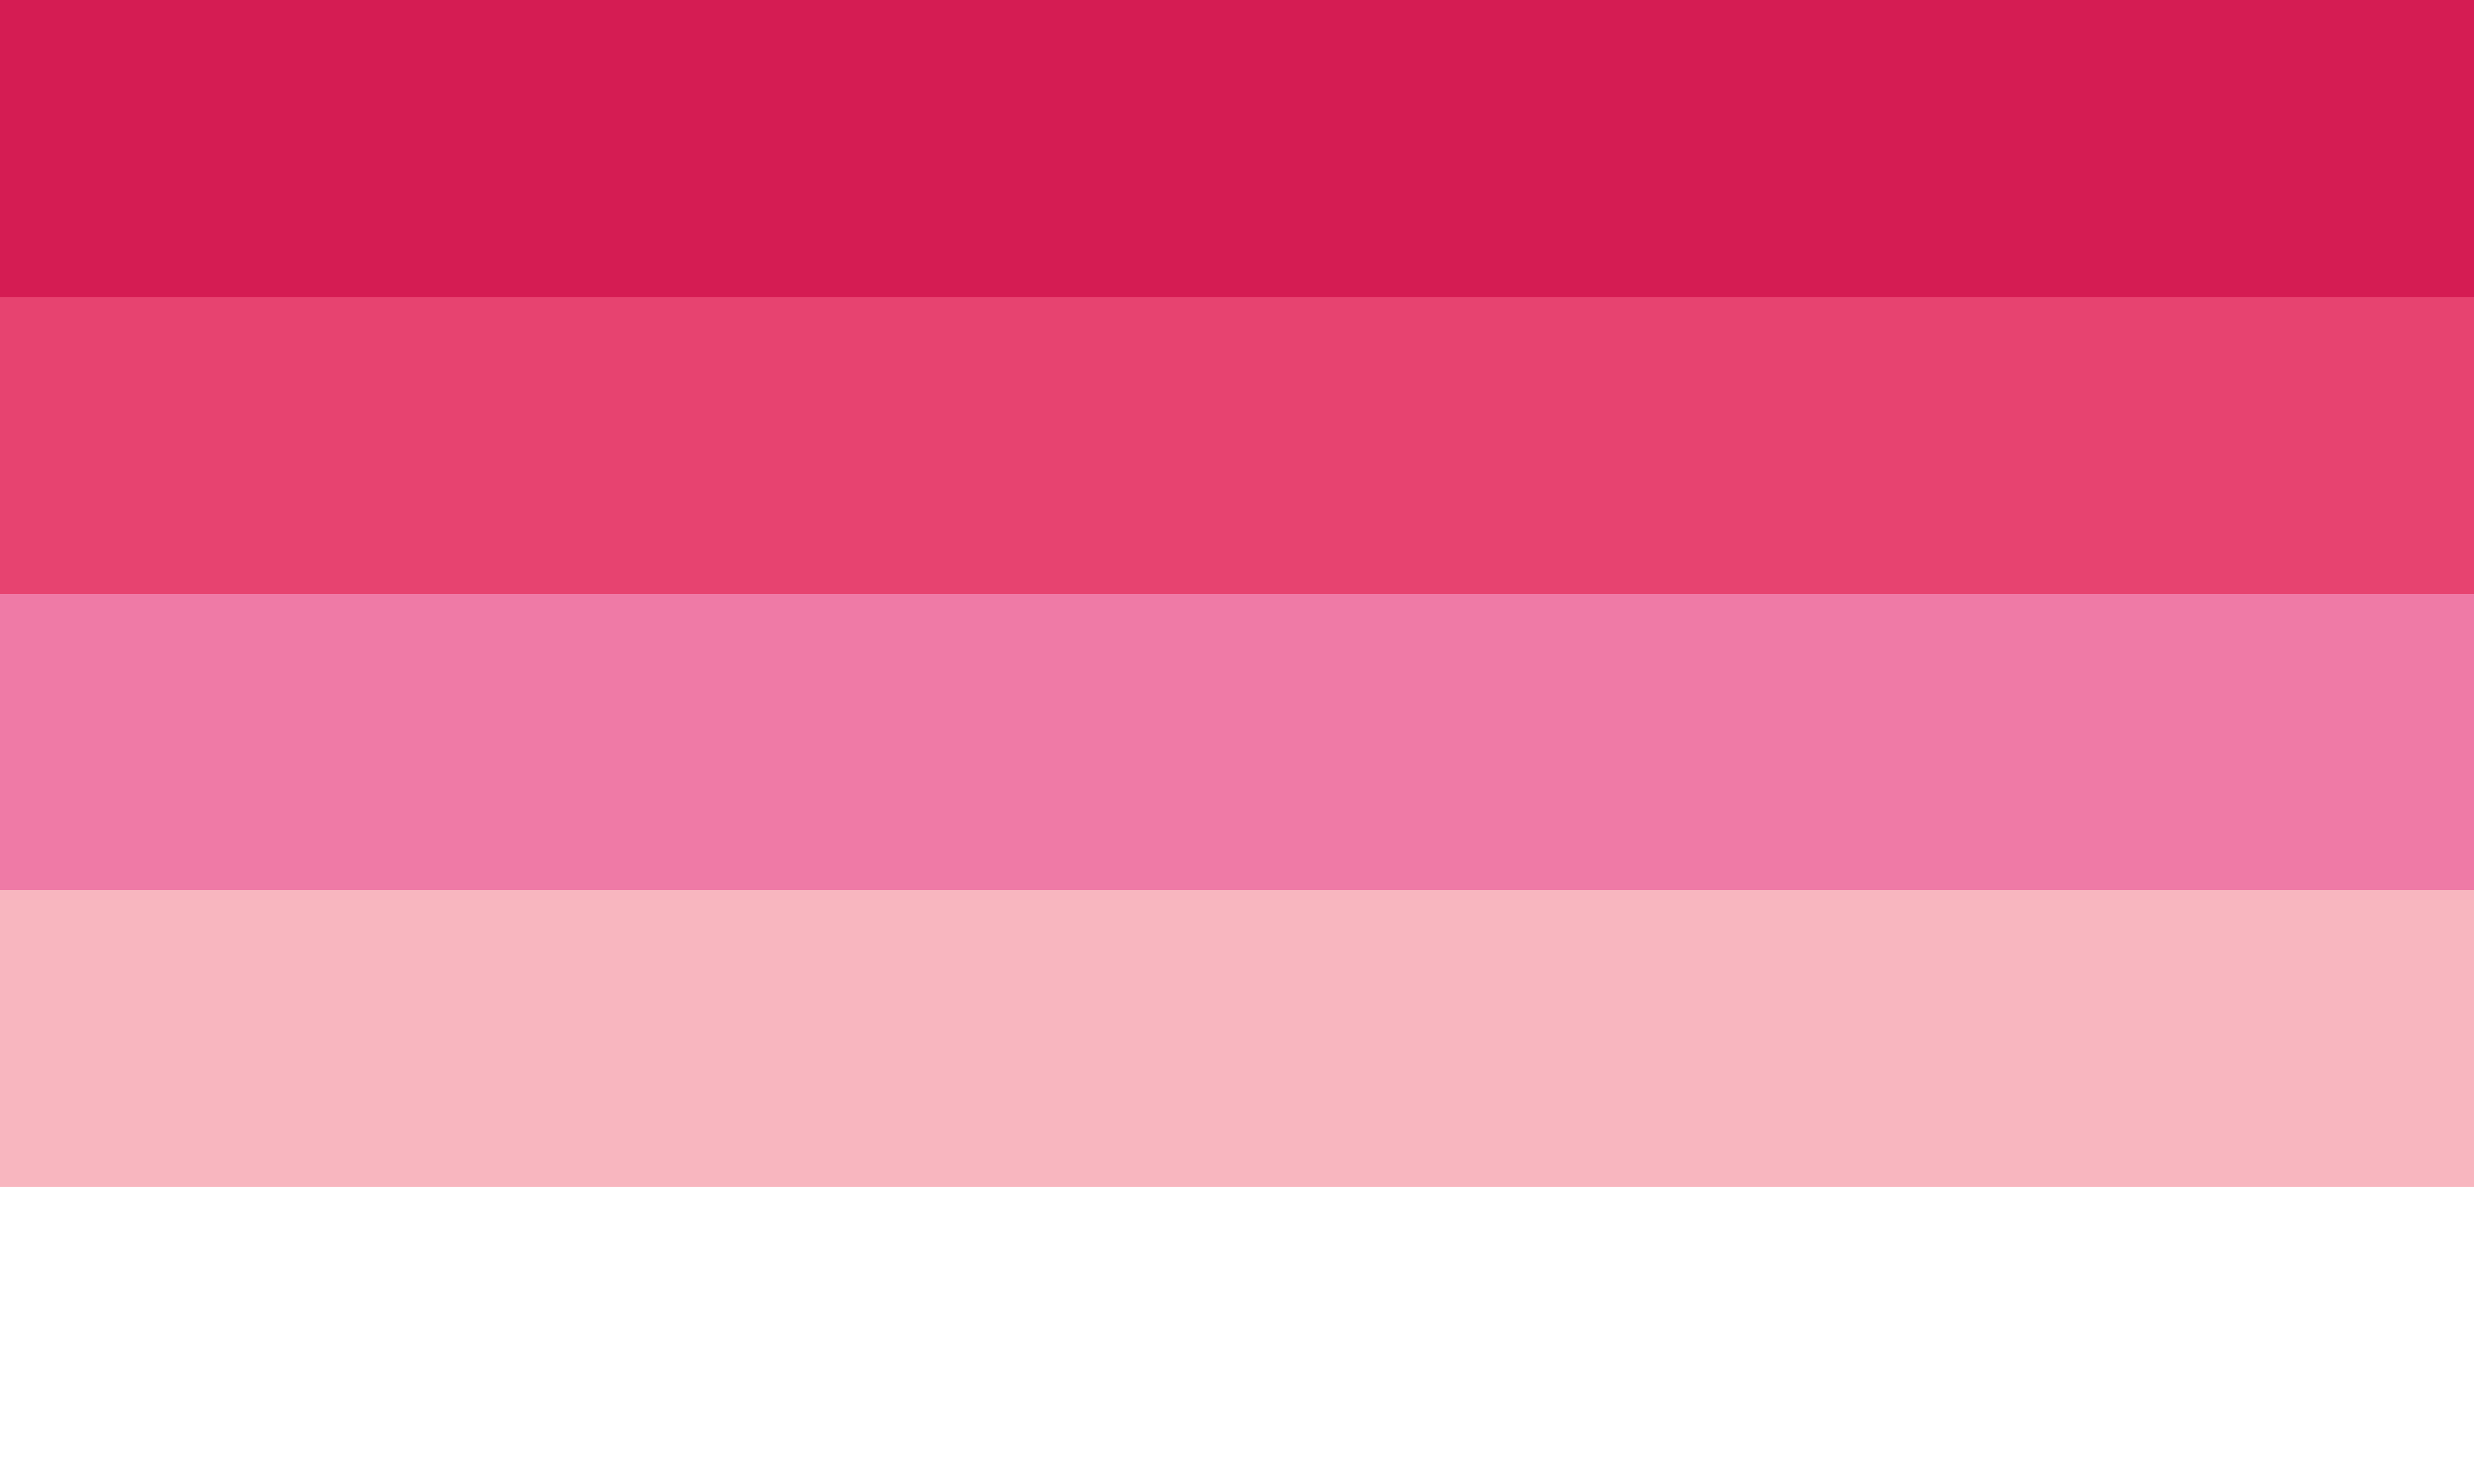 Woma- / Woman- by Pride-Flags